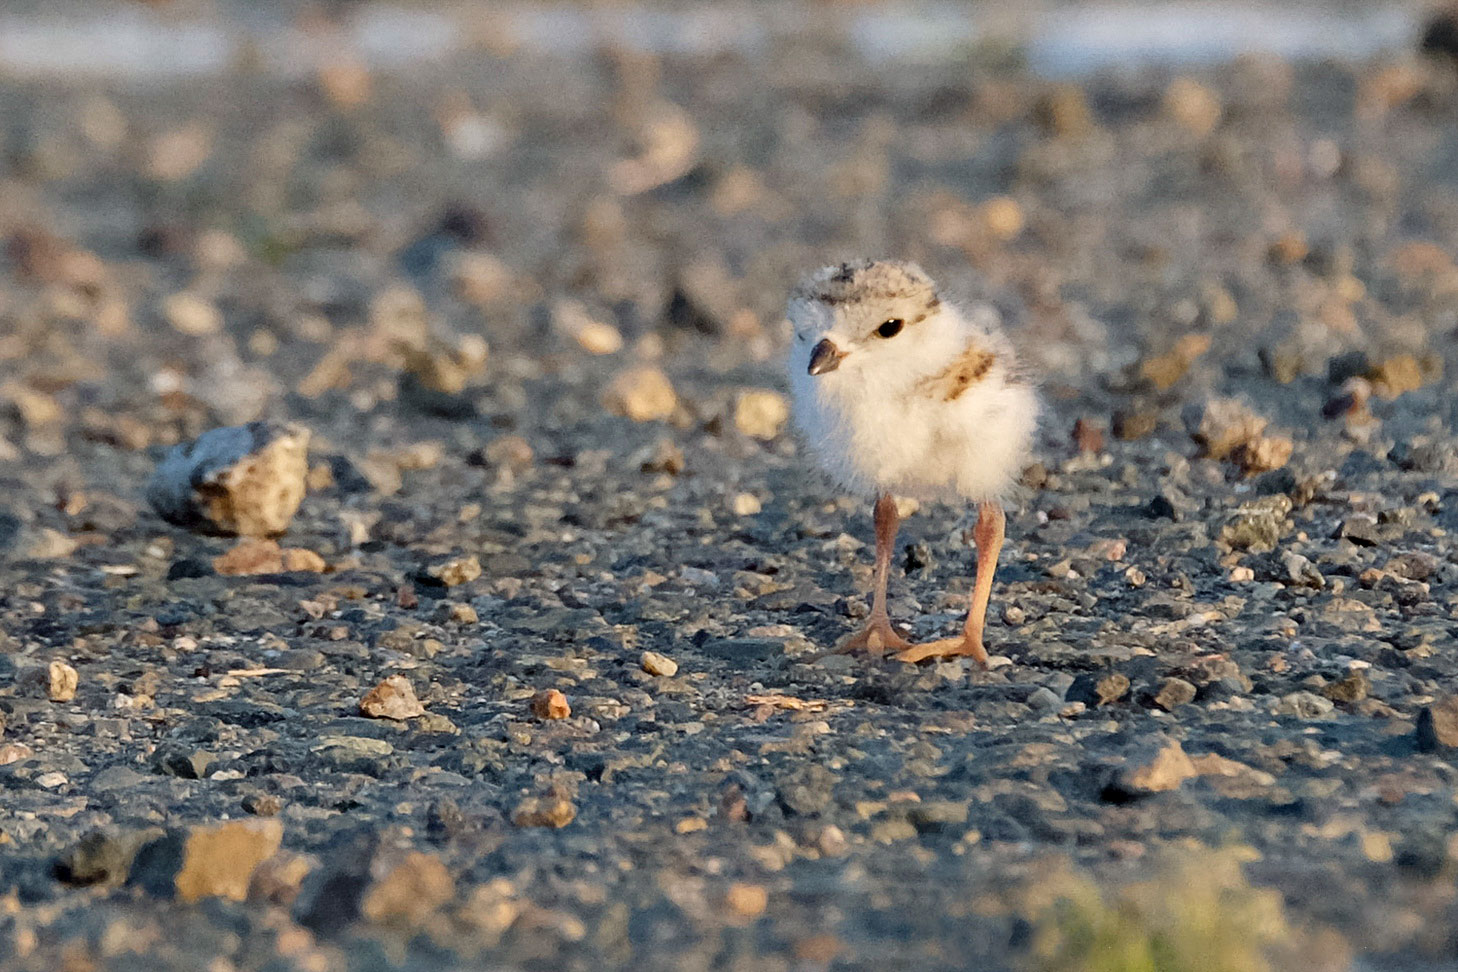 A one-day-old chick in the parking lot. Kim Smith